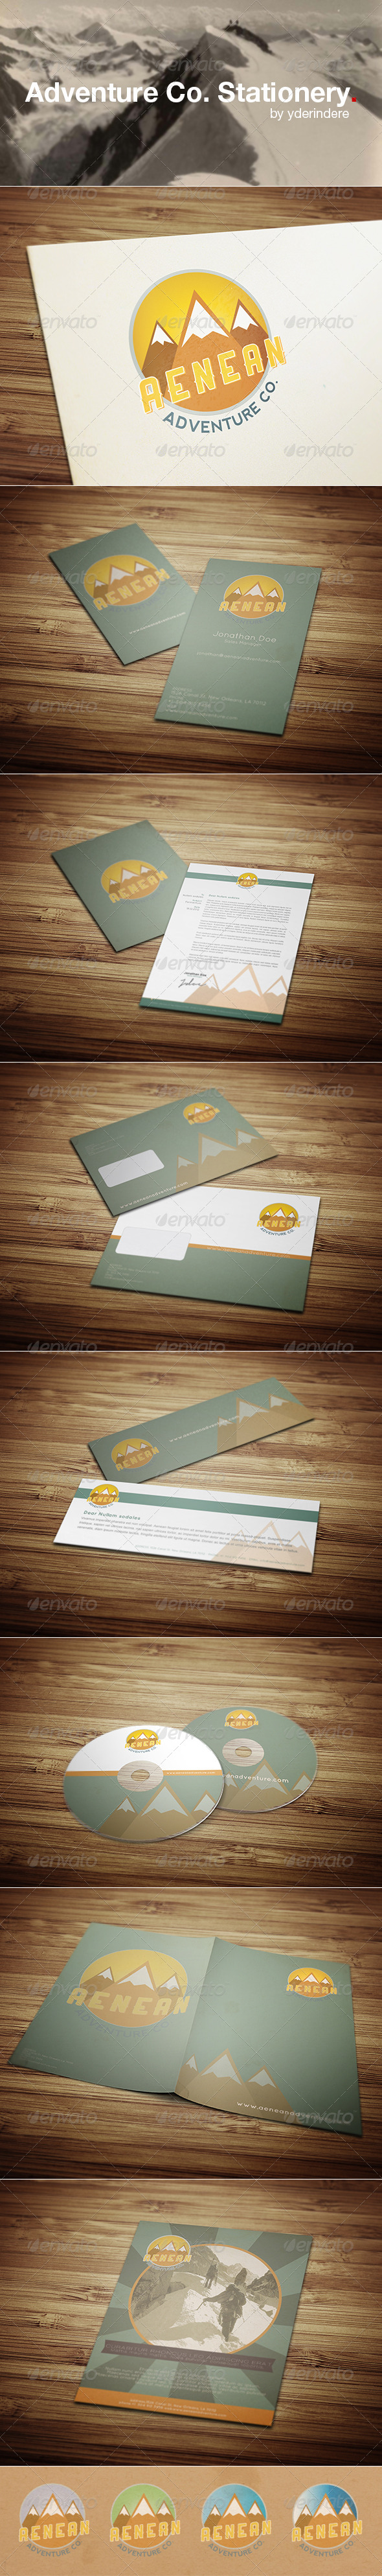 Adventure Co. - Retro Stationery 1 - Stationery Print Templates